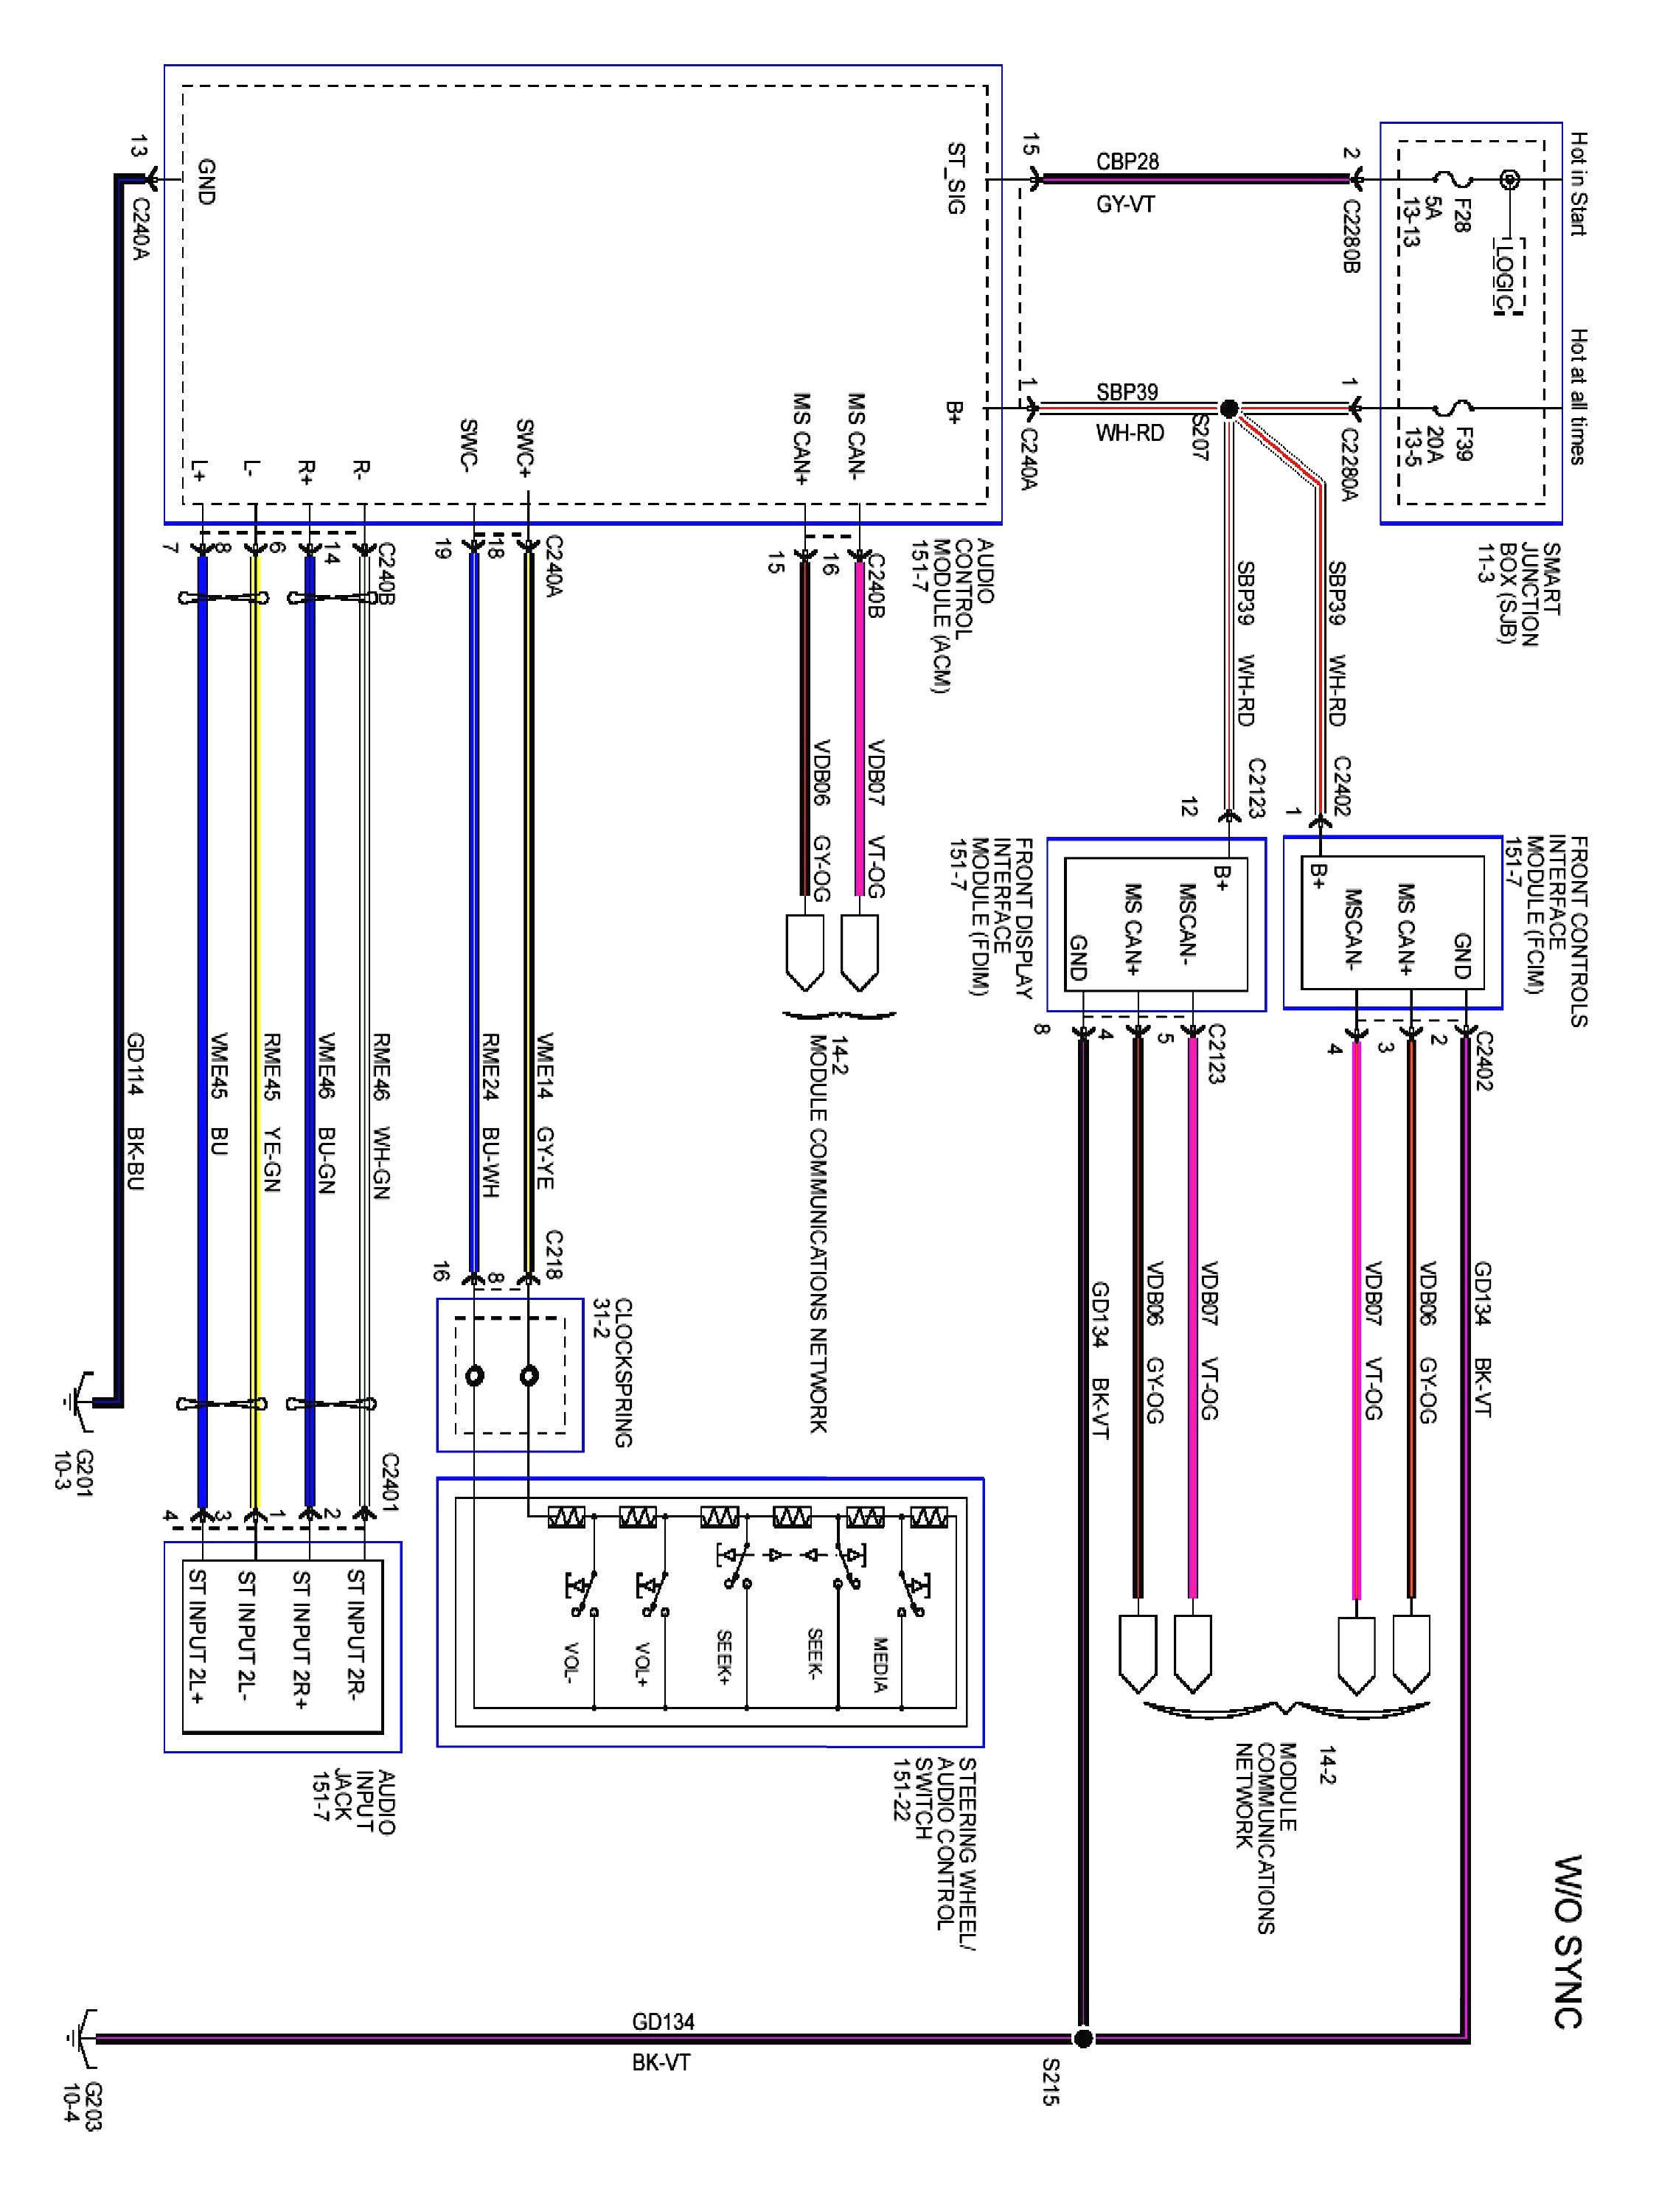 2012 ford focus wiring harness - wiring diagram system nice-image -  nice-image.ediliadesign.it  ediliadesign.it